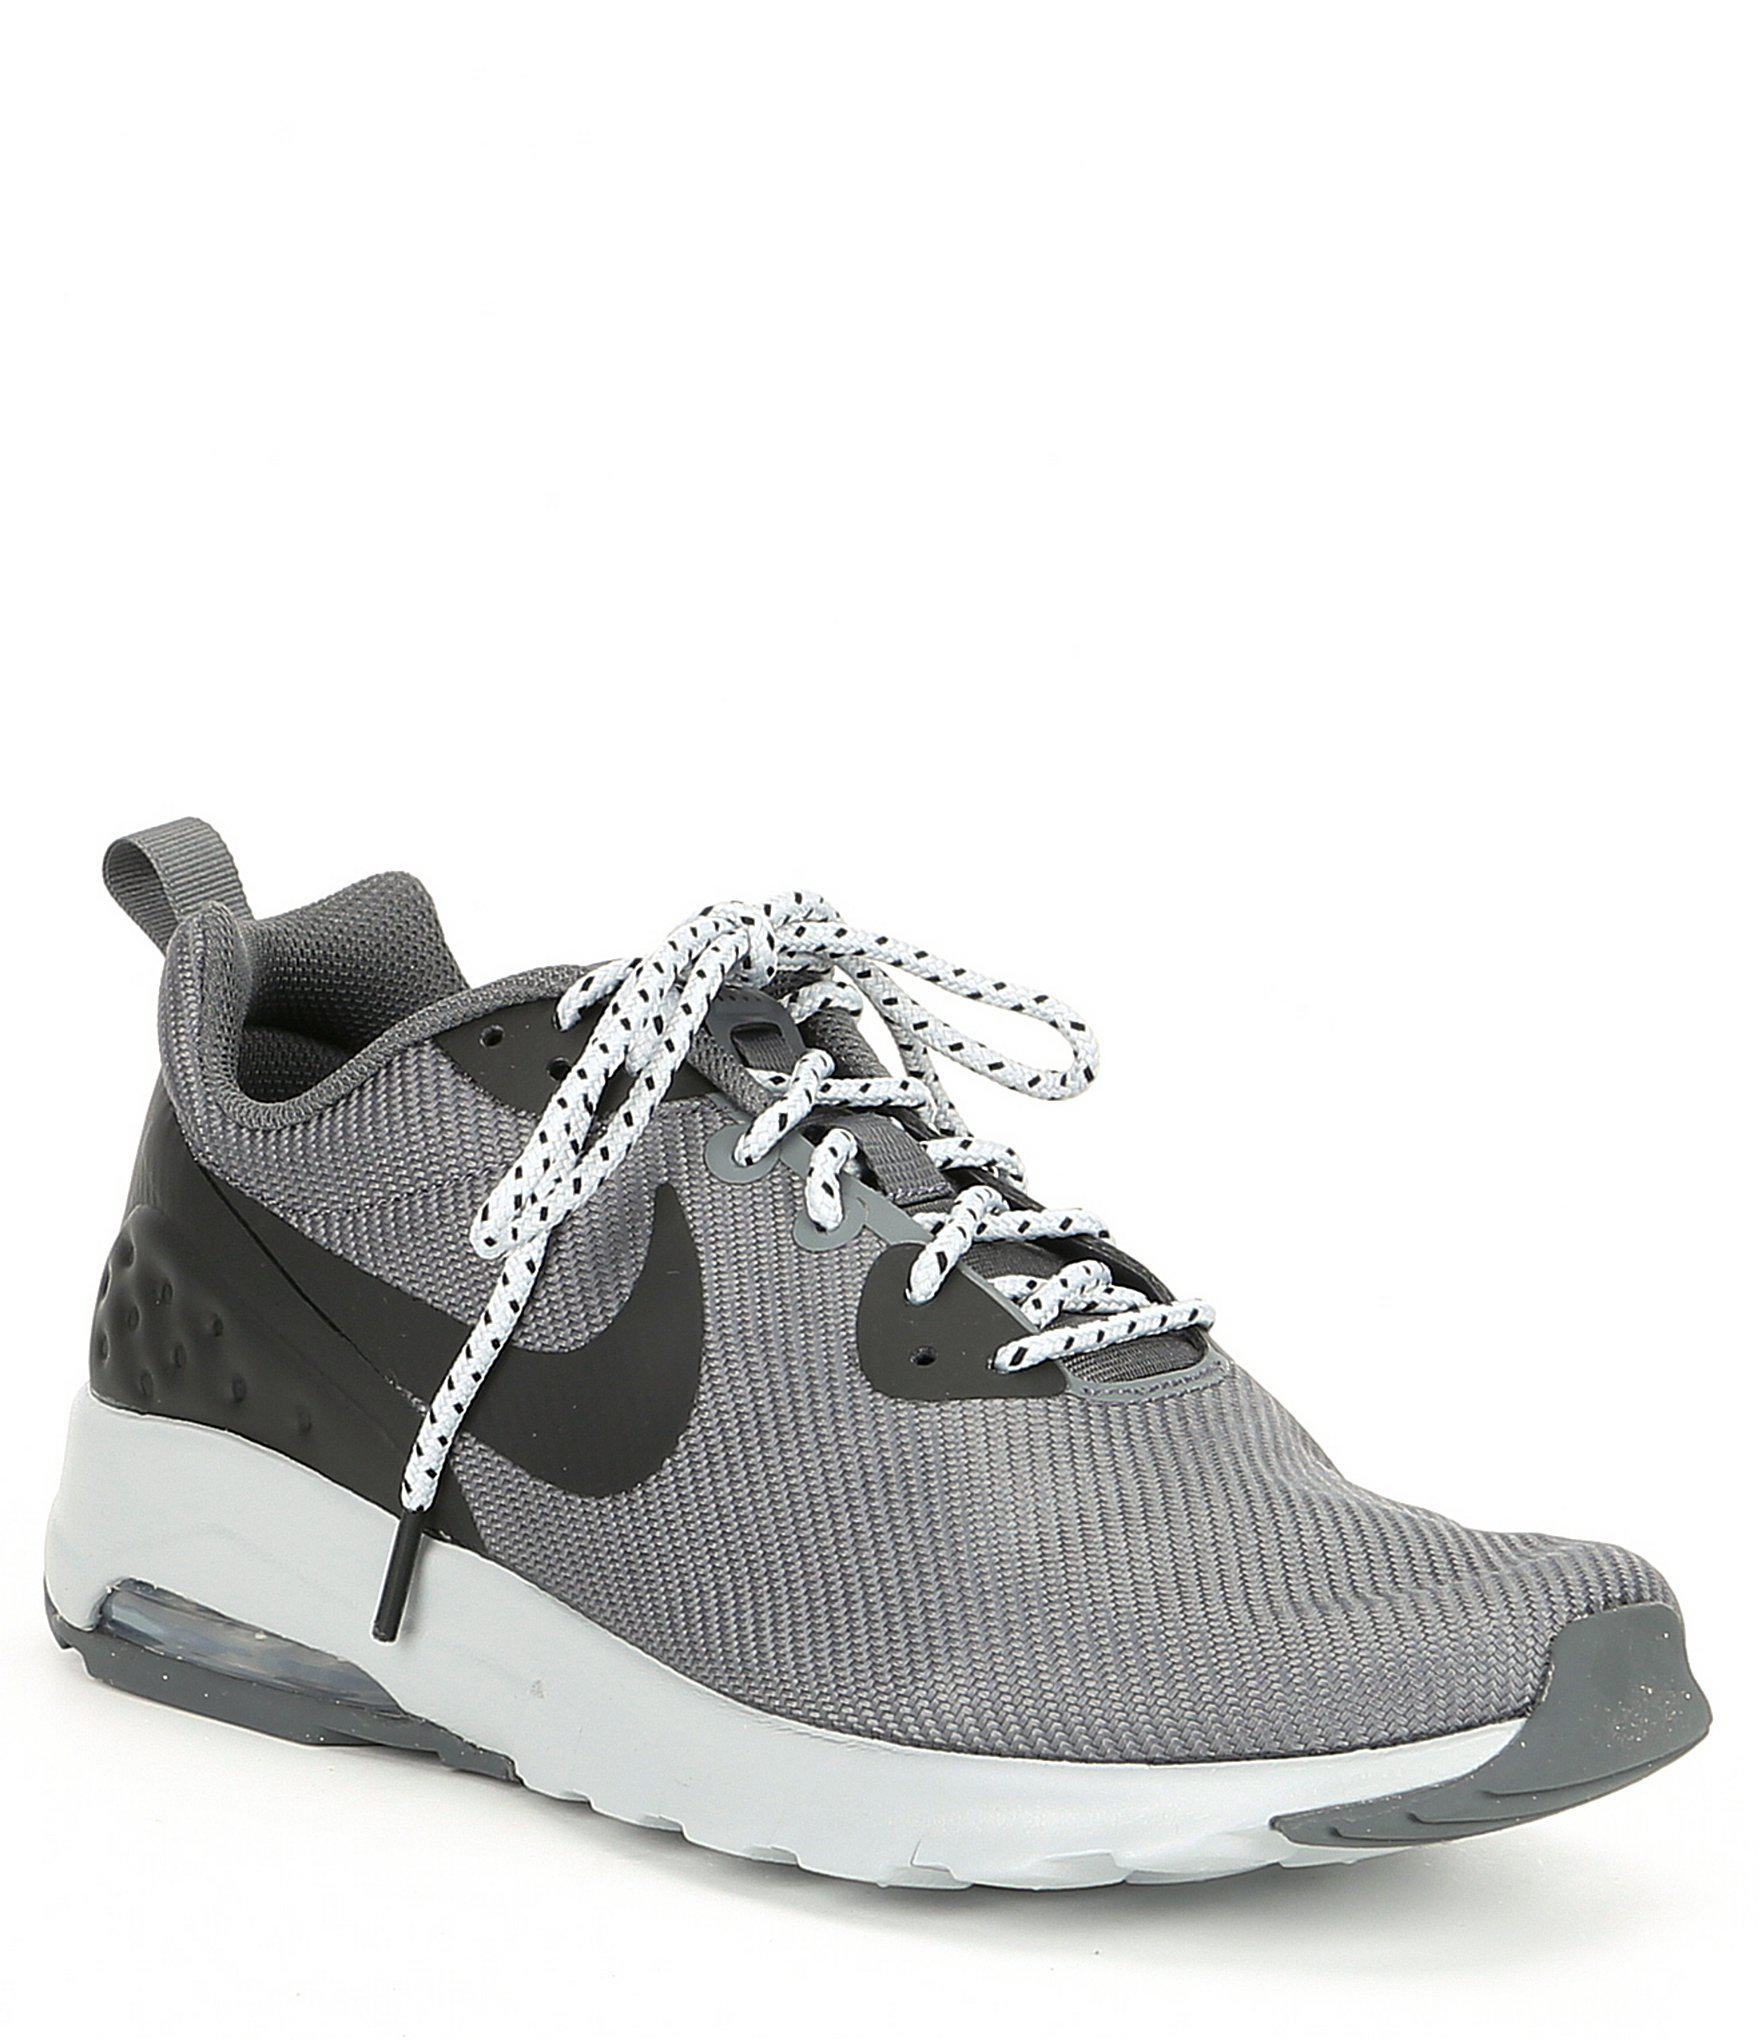 153d6931b112 Lyst - Nike Men s Air Max Motion Lw Se Shoes in Gray for Men